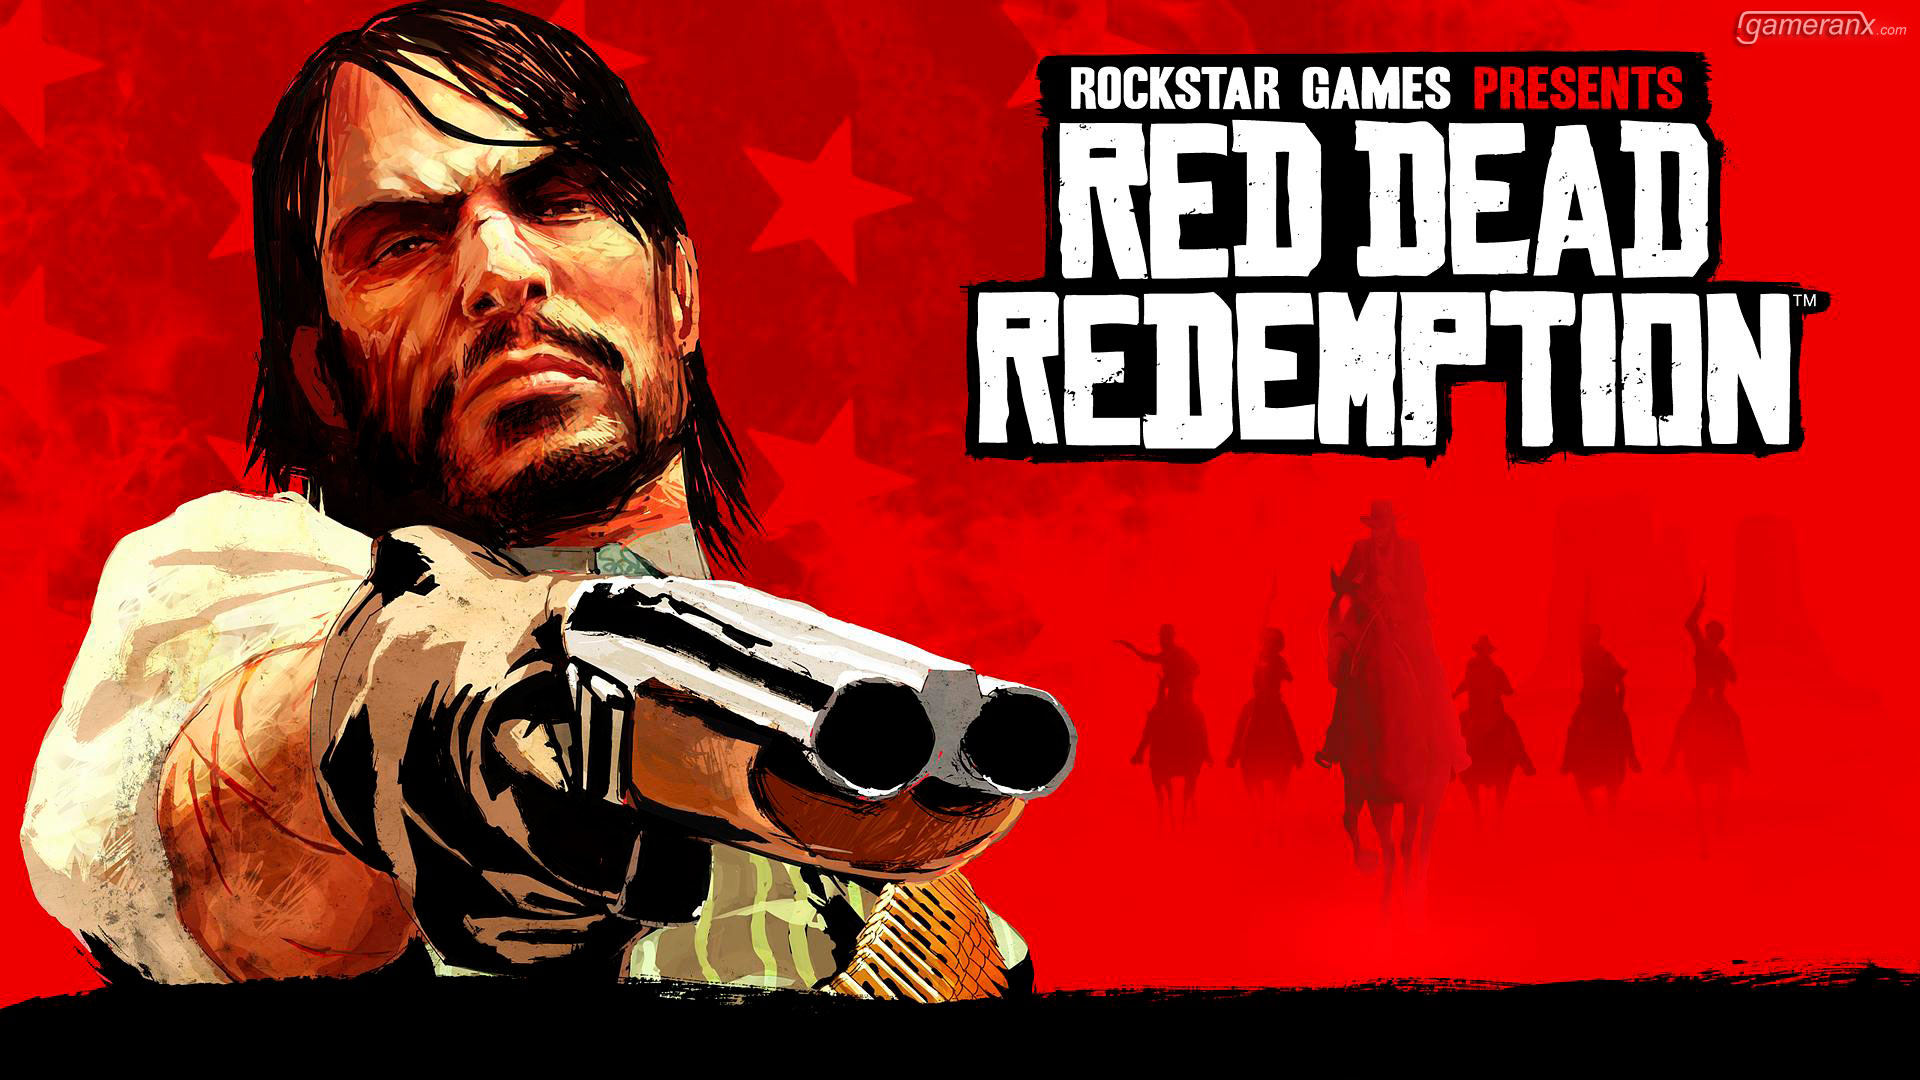 Red Dead Redemption Wallpapers